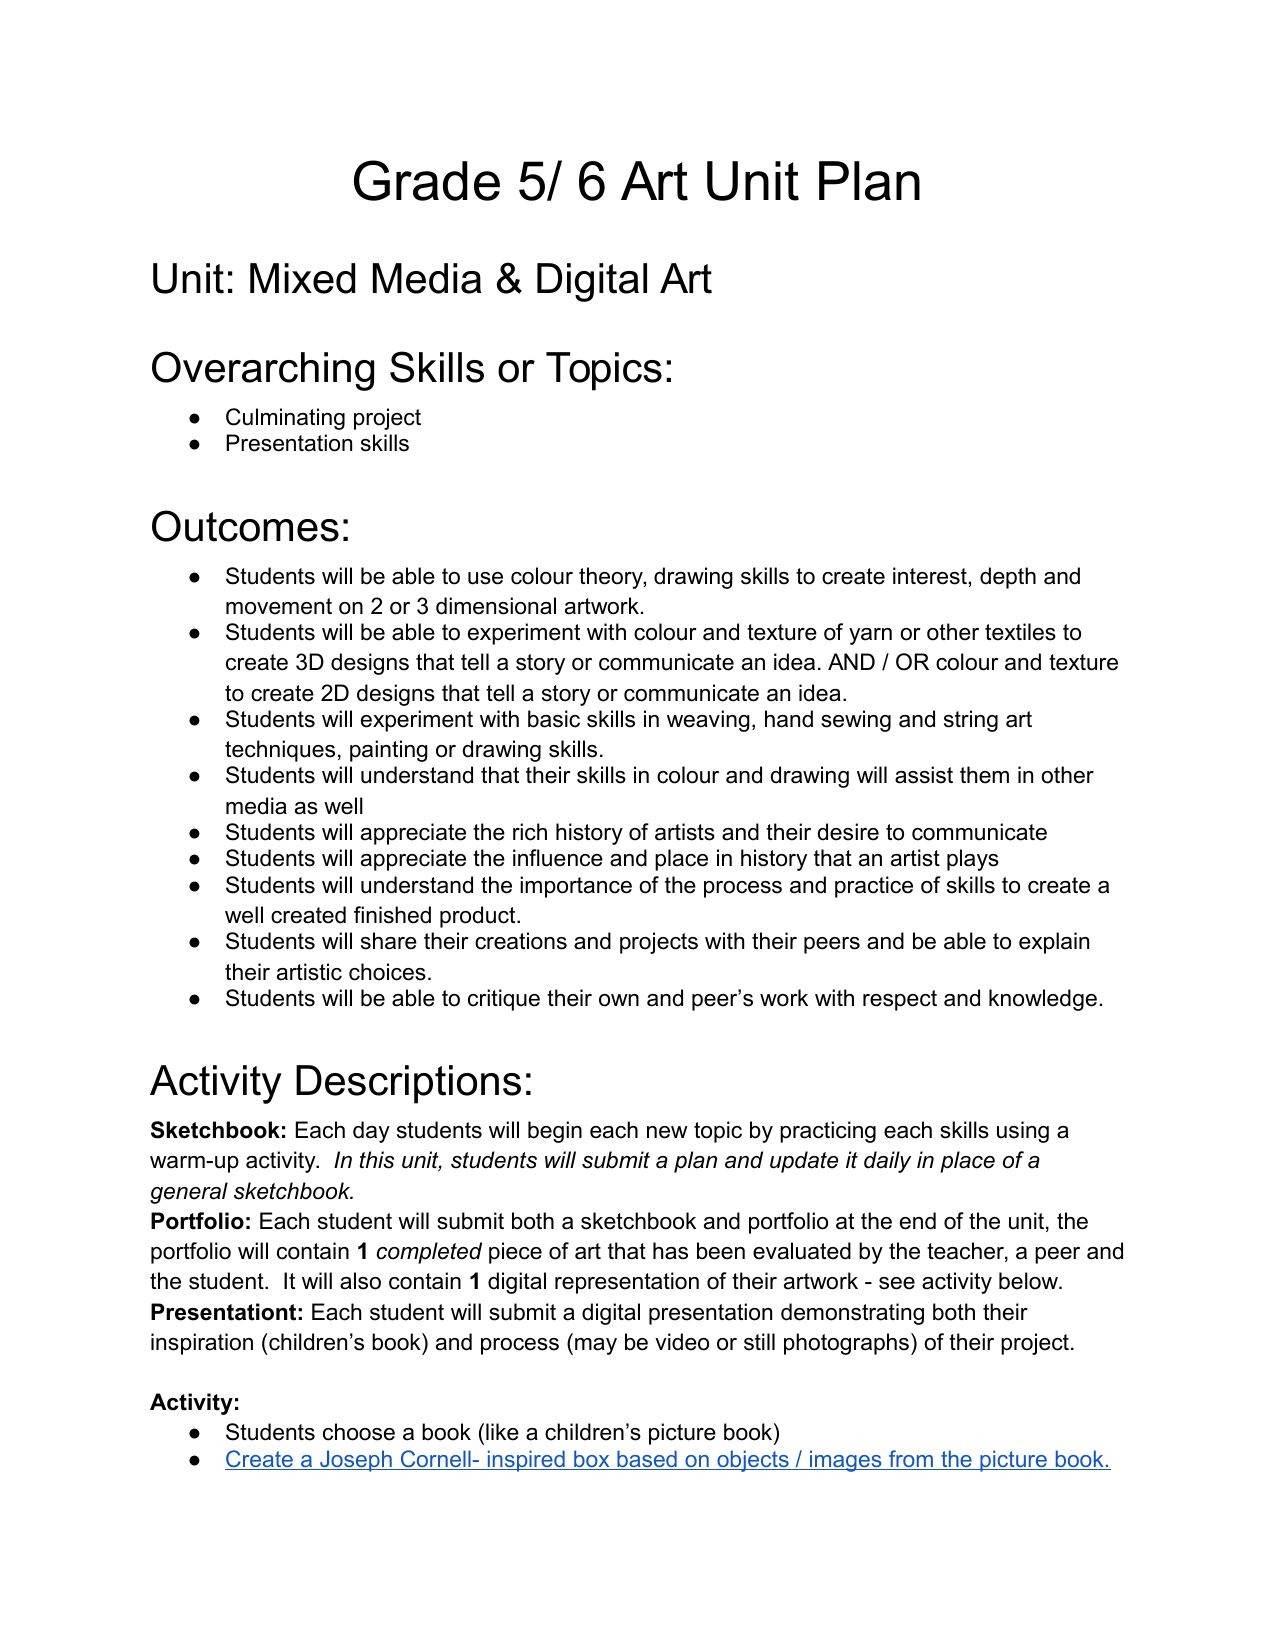 Mixed Media and Digital Art Resource Preview